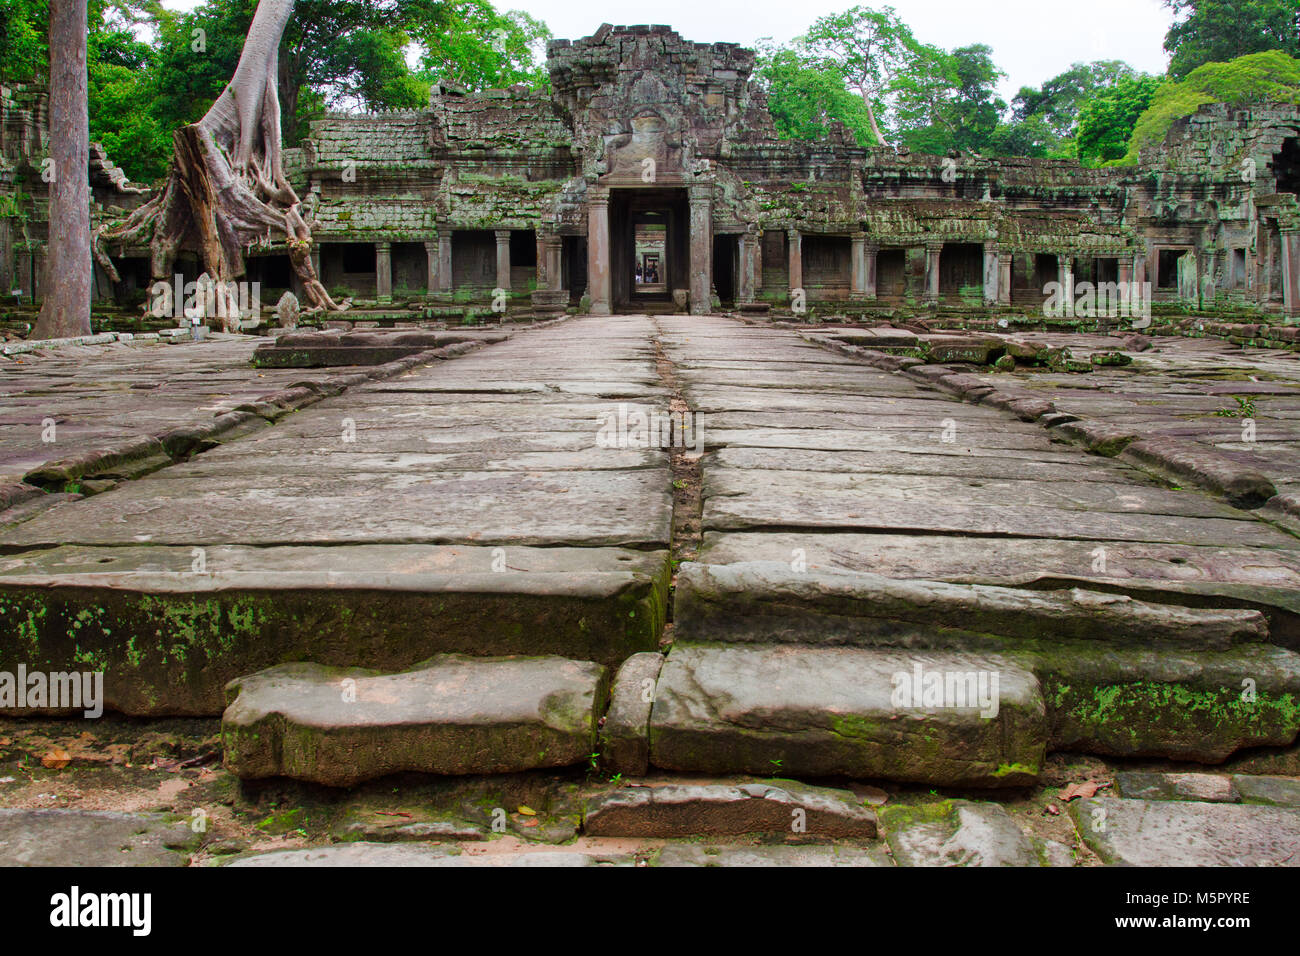 Angkor Wat, a UN Heritage Site in Cambodia. Made famous in the Movie Lara Croft: Tomb Raider. - Stock Image